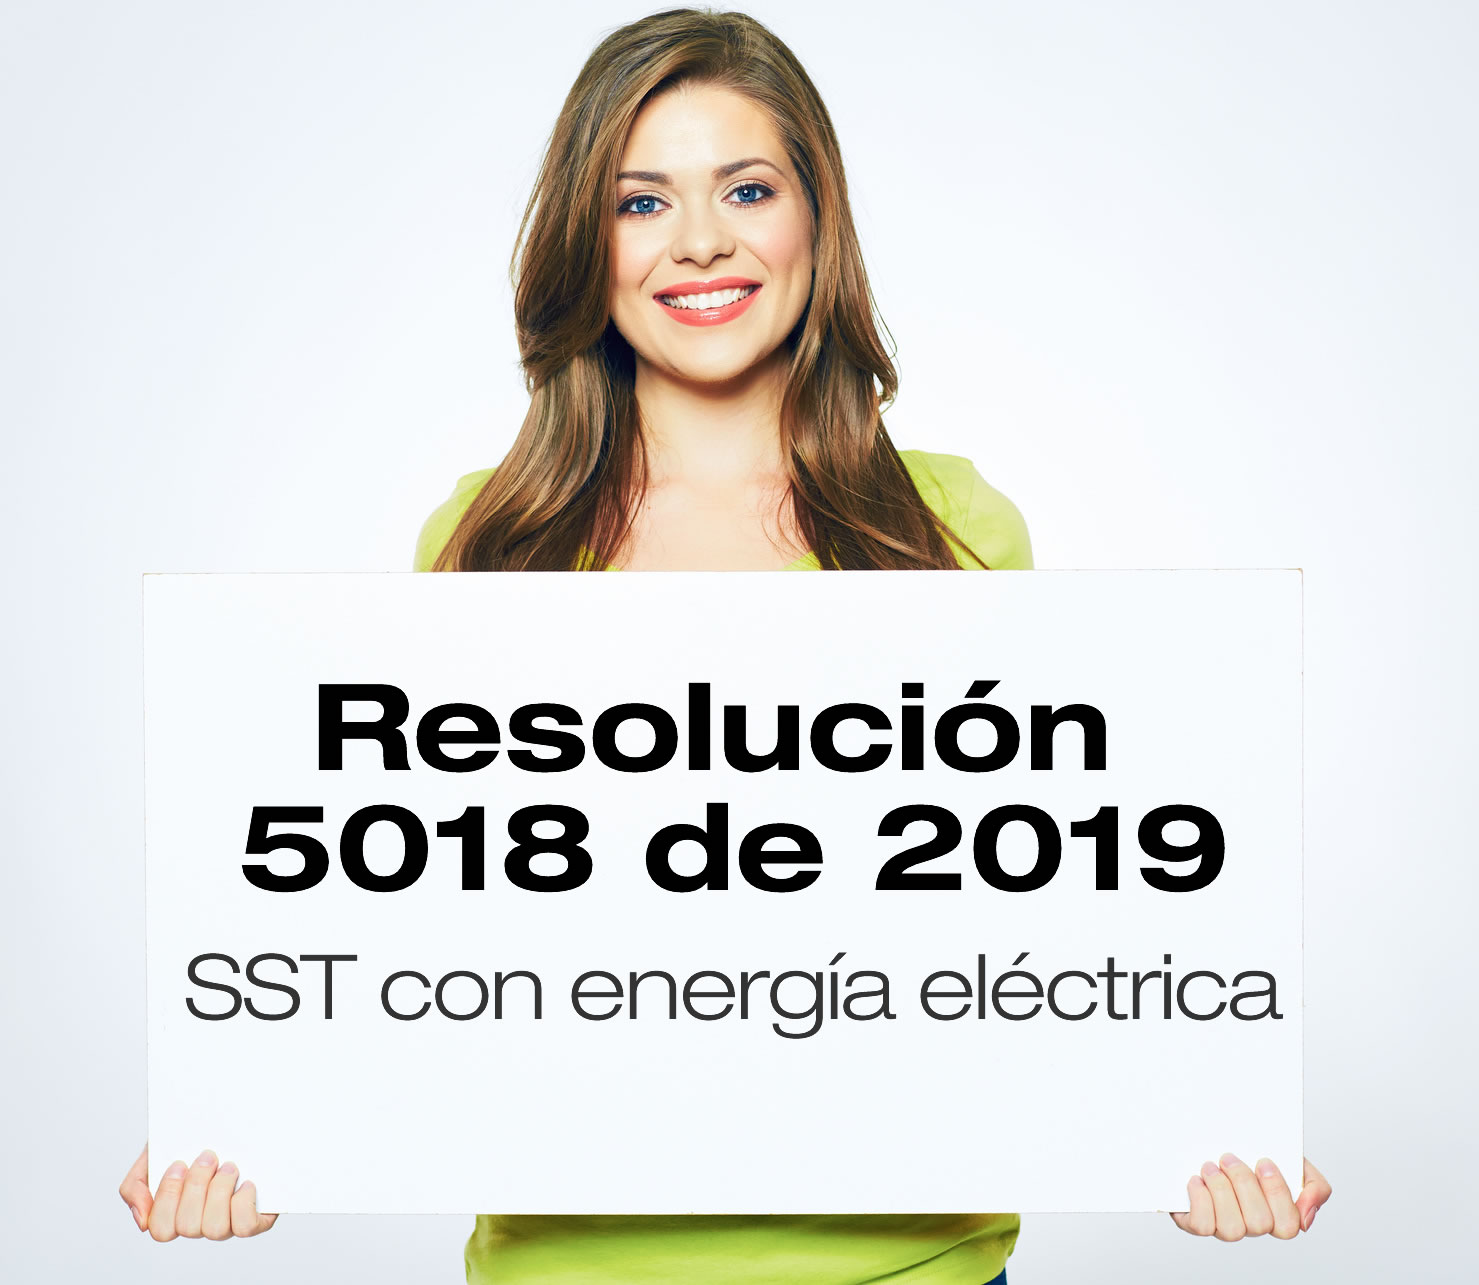 Resolución 5018 de 2019